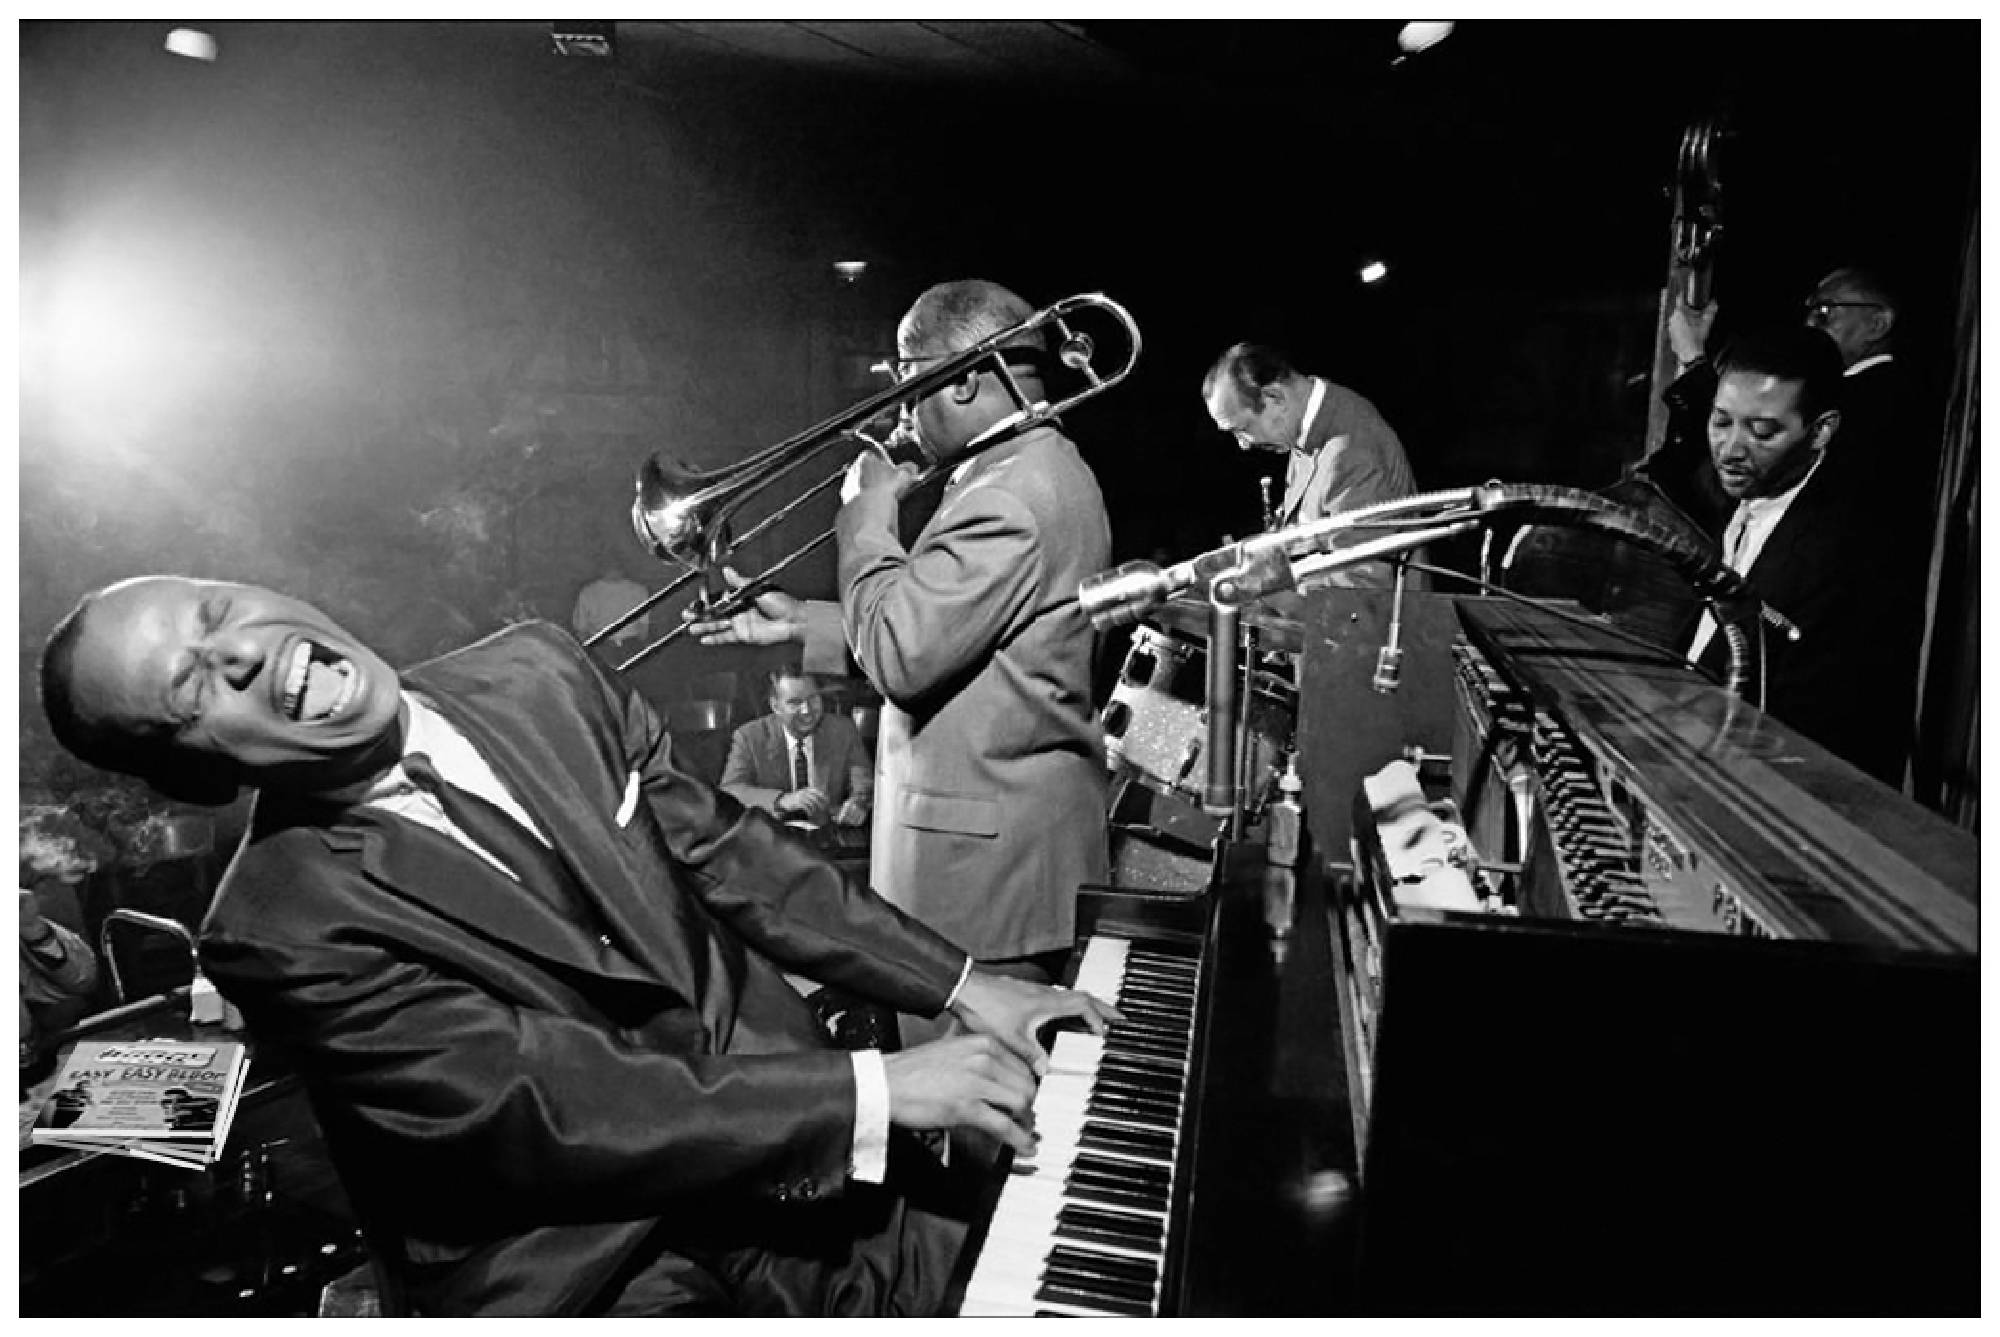 a comparison of chicago jazz and new york jazz since the 1920s Long heralded as chicago's leading jazz venue, the venerable club is the oldest jazz spot in the city and has been forced to relocate more than once since its inception in 1947.